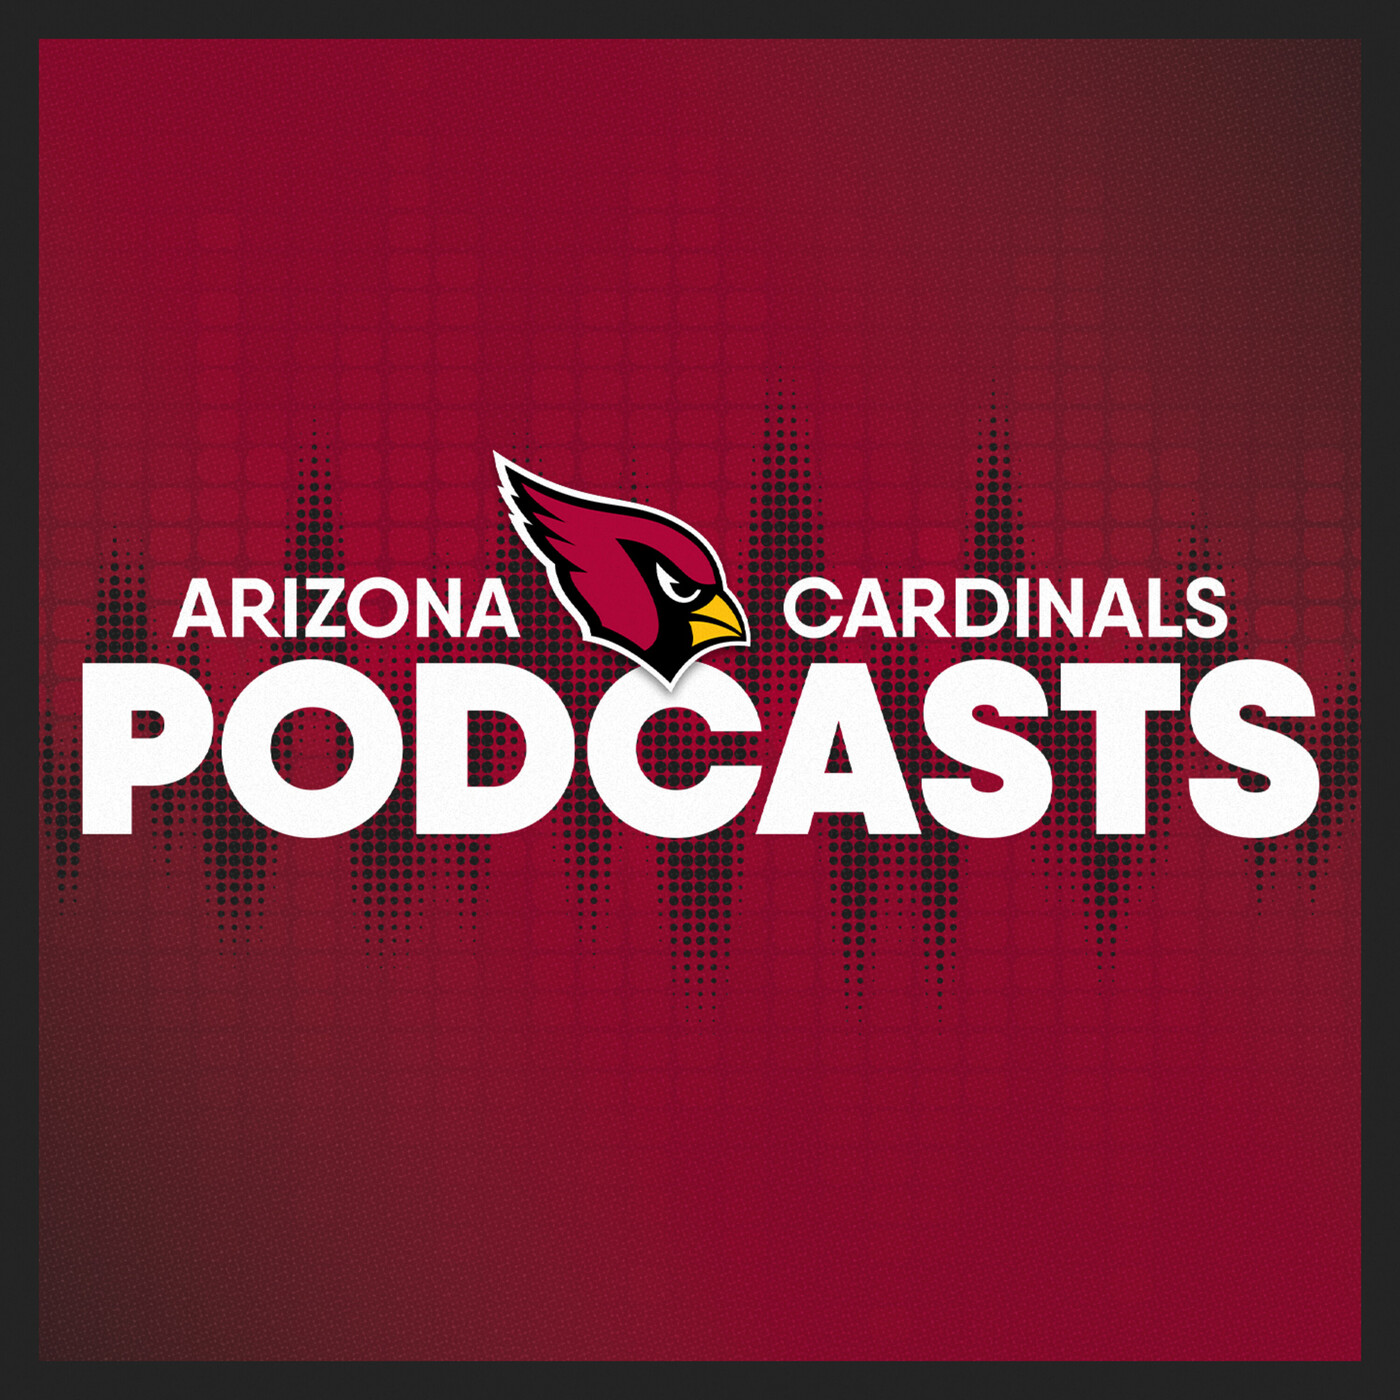 Cardinals Cover 2 - Big Statement On A Big Stage In 'Big D'